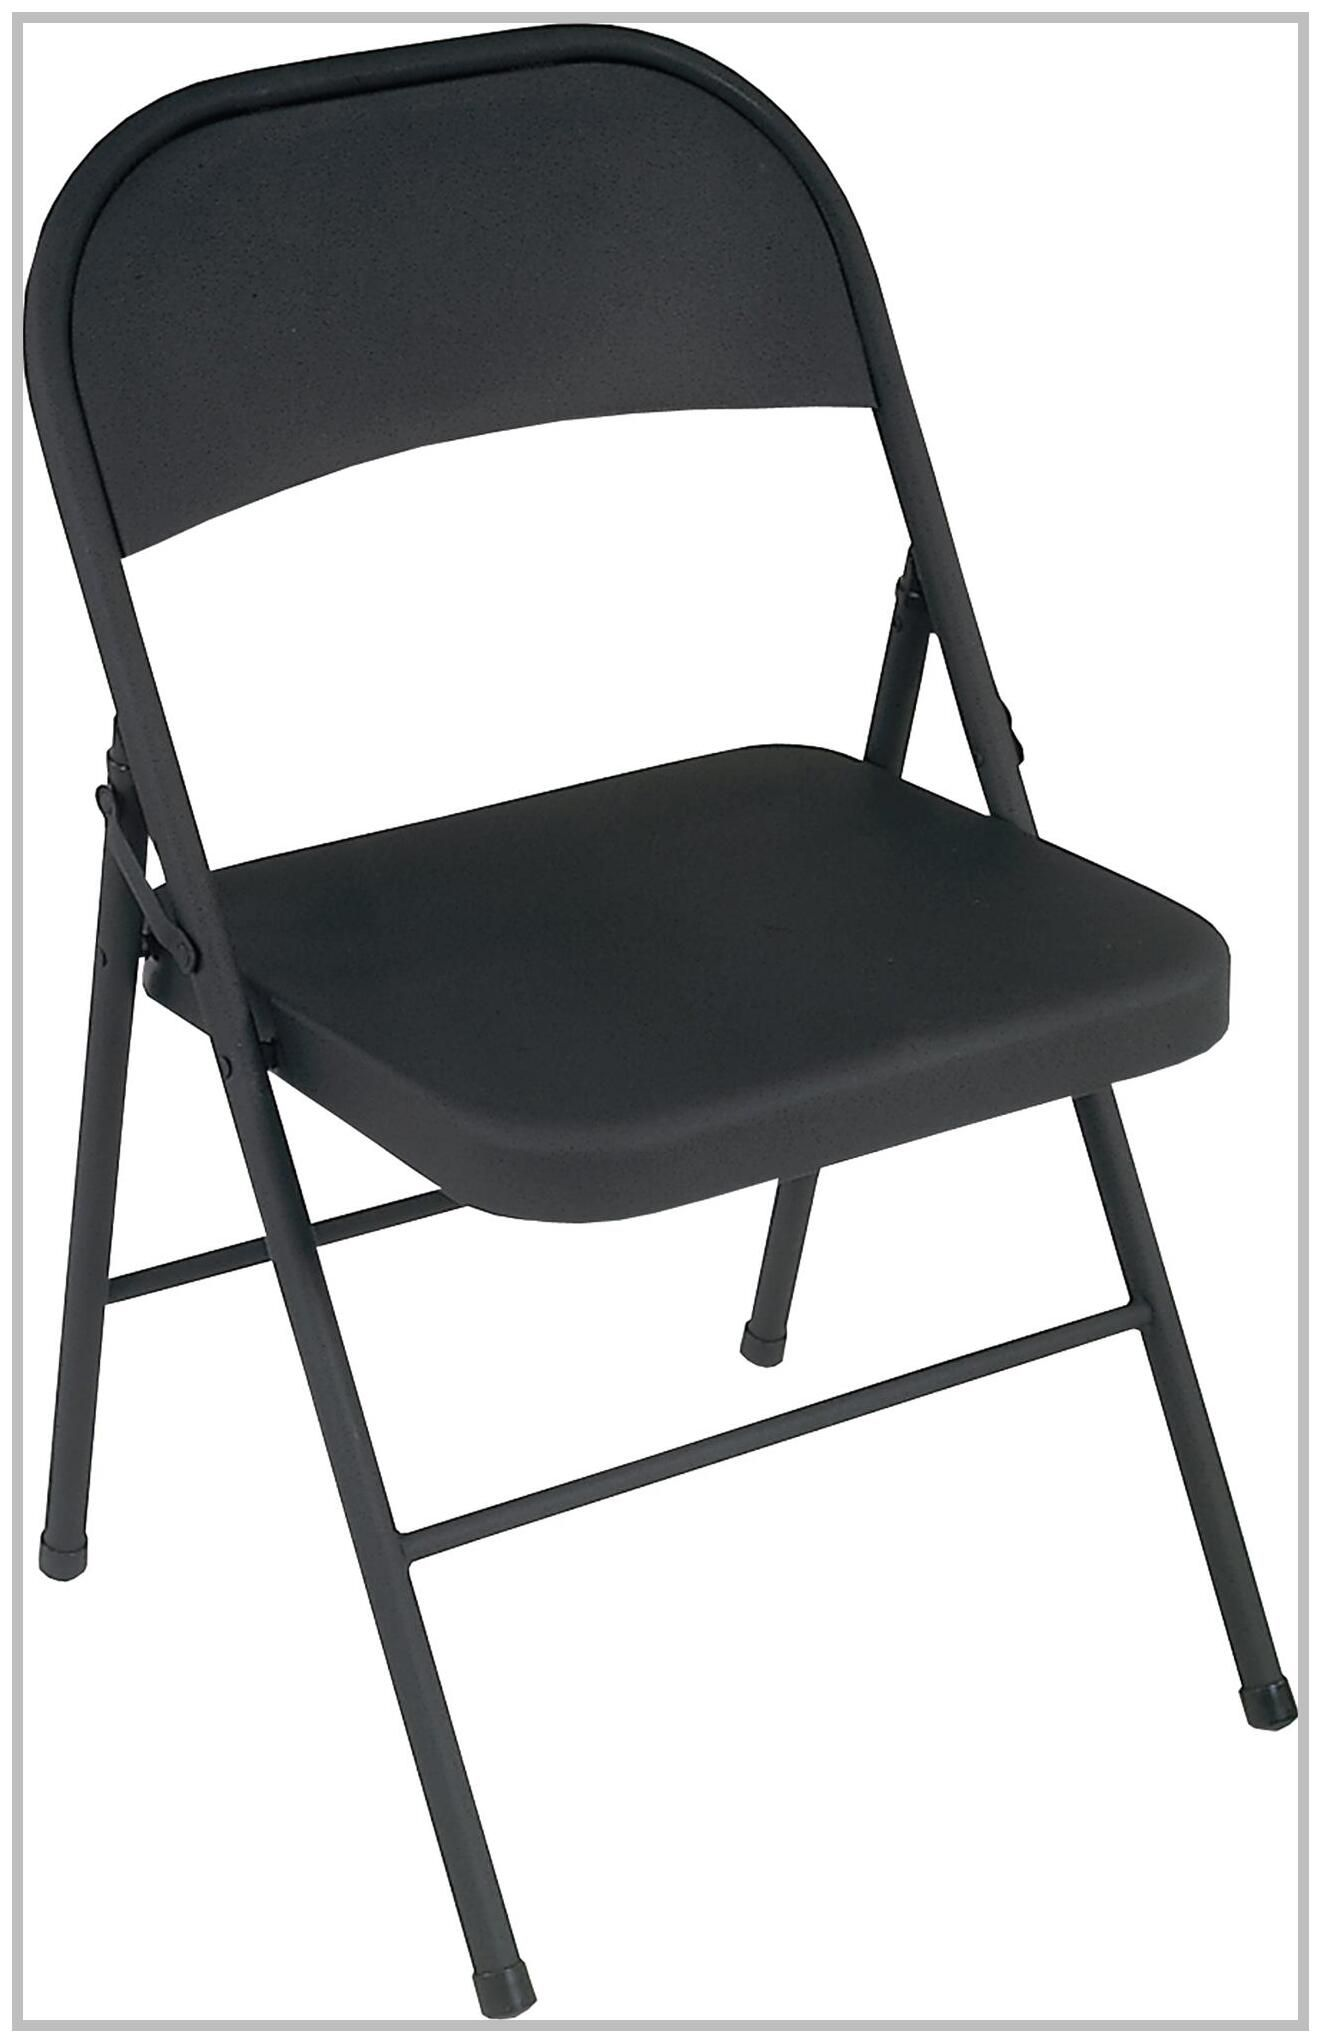 8 reference of folding chair steel hs code in 8  Metal